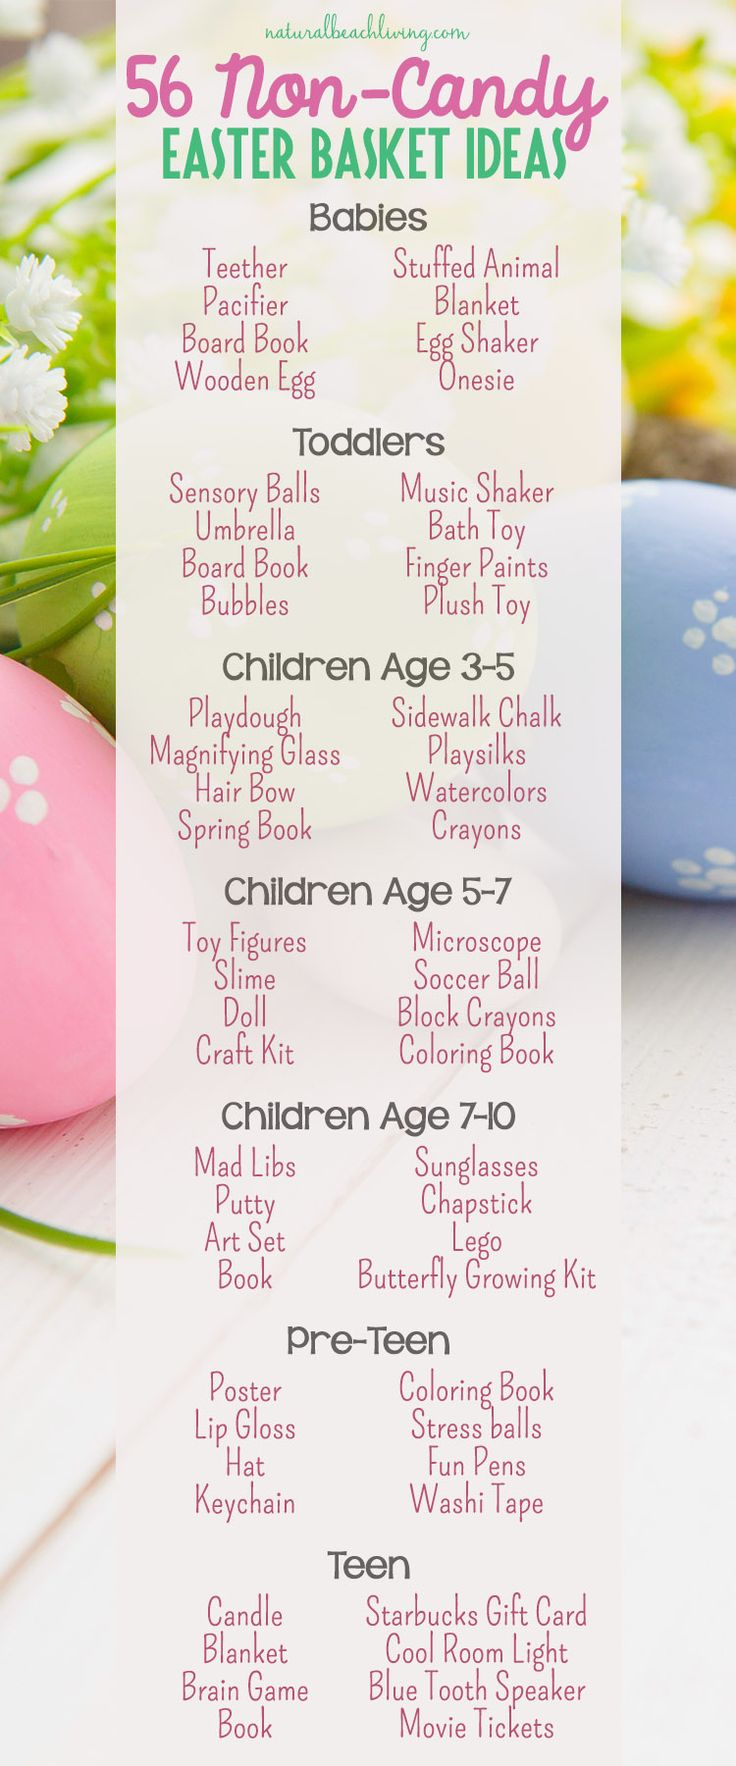 The 25 best easter baskets ideas on pinterest easter ideas 56 non candy easter basket ideas for kids negle Choice Image